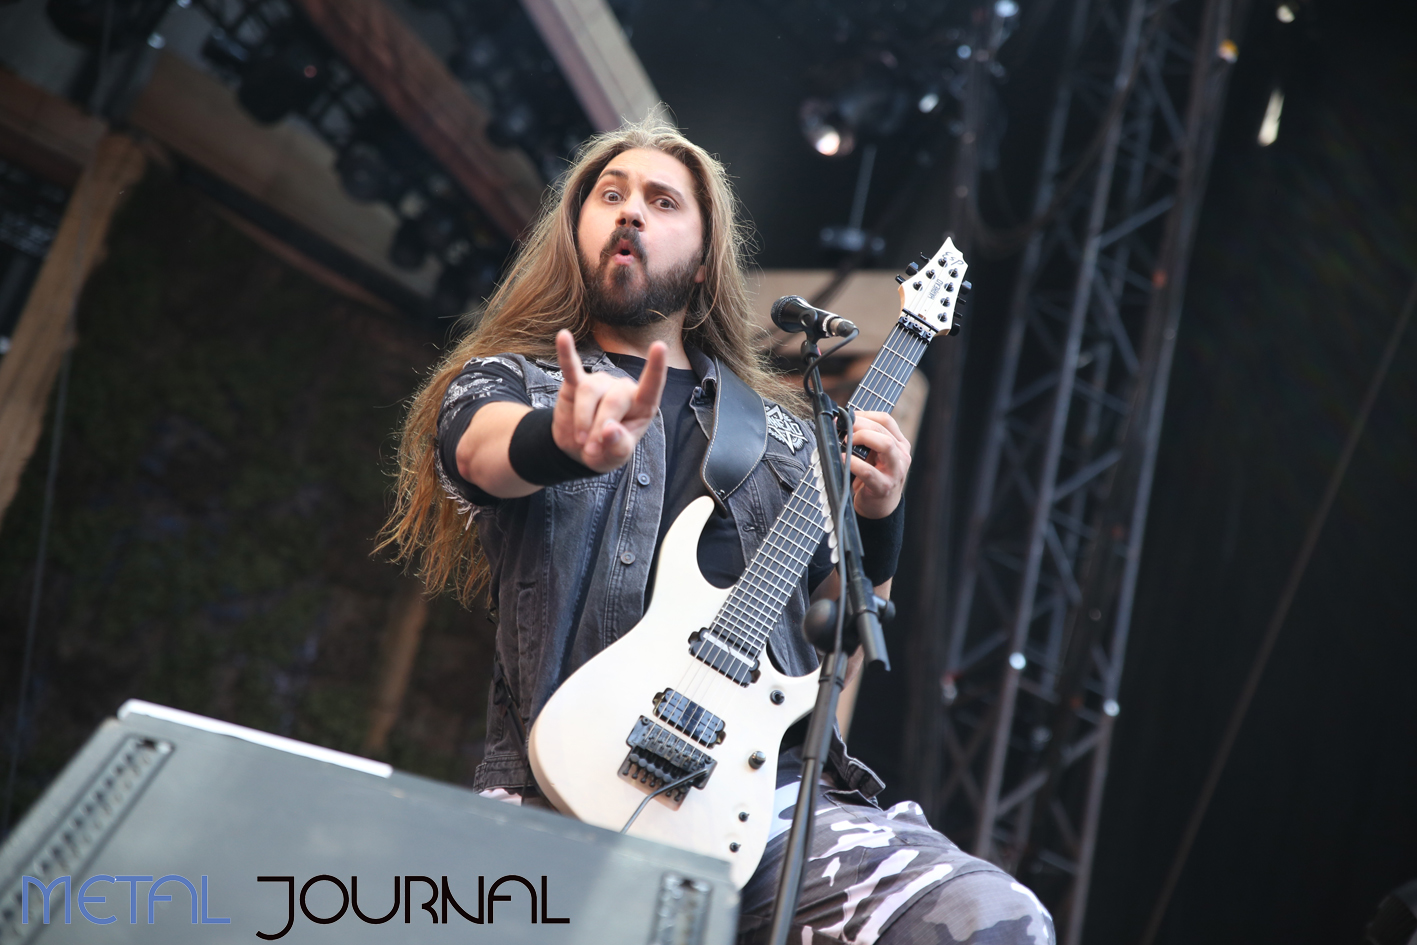 sabaton - wanda metropolitano metal journal 2018 pic 4